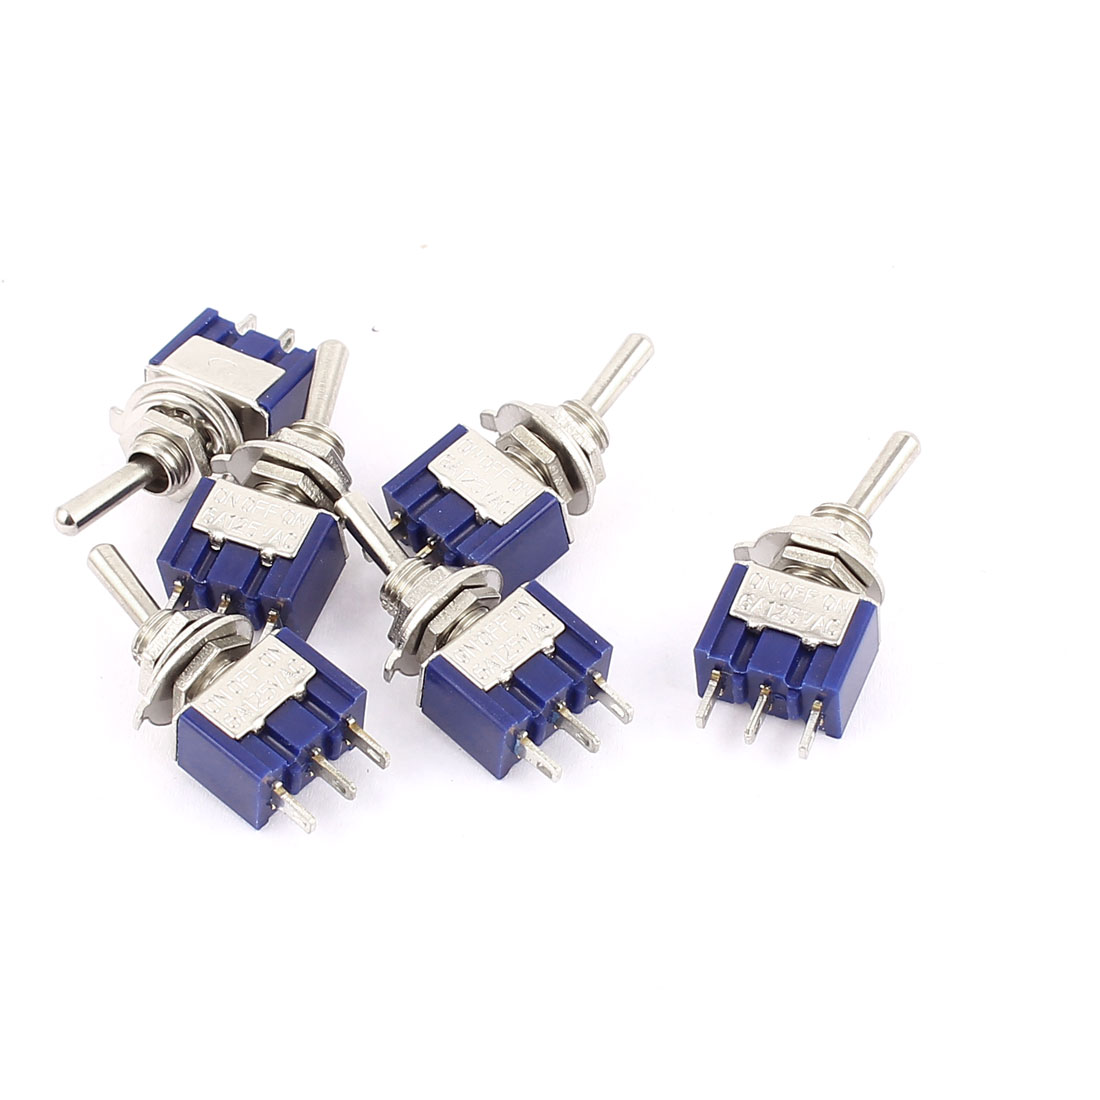 6 Pcs AC125V 6A SPDT ON-OFF-ON 3 Positions 3 Terminals Latching Mini Toggle Switch